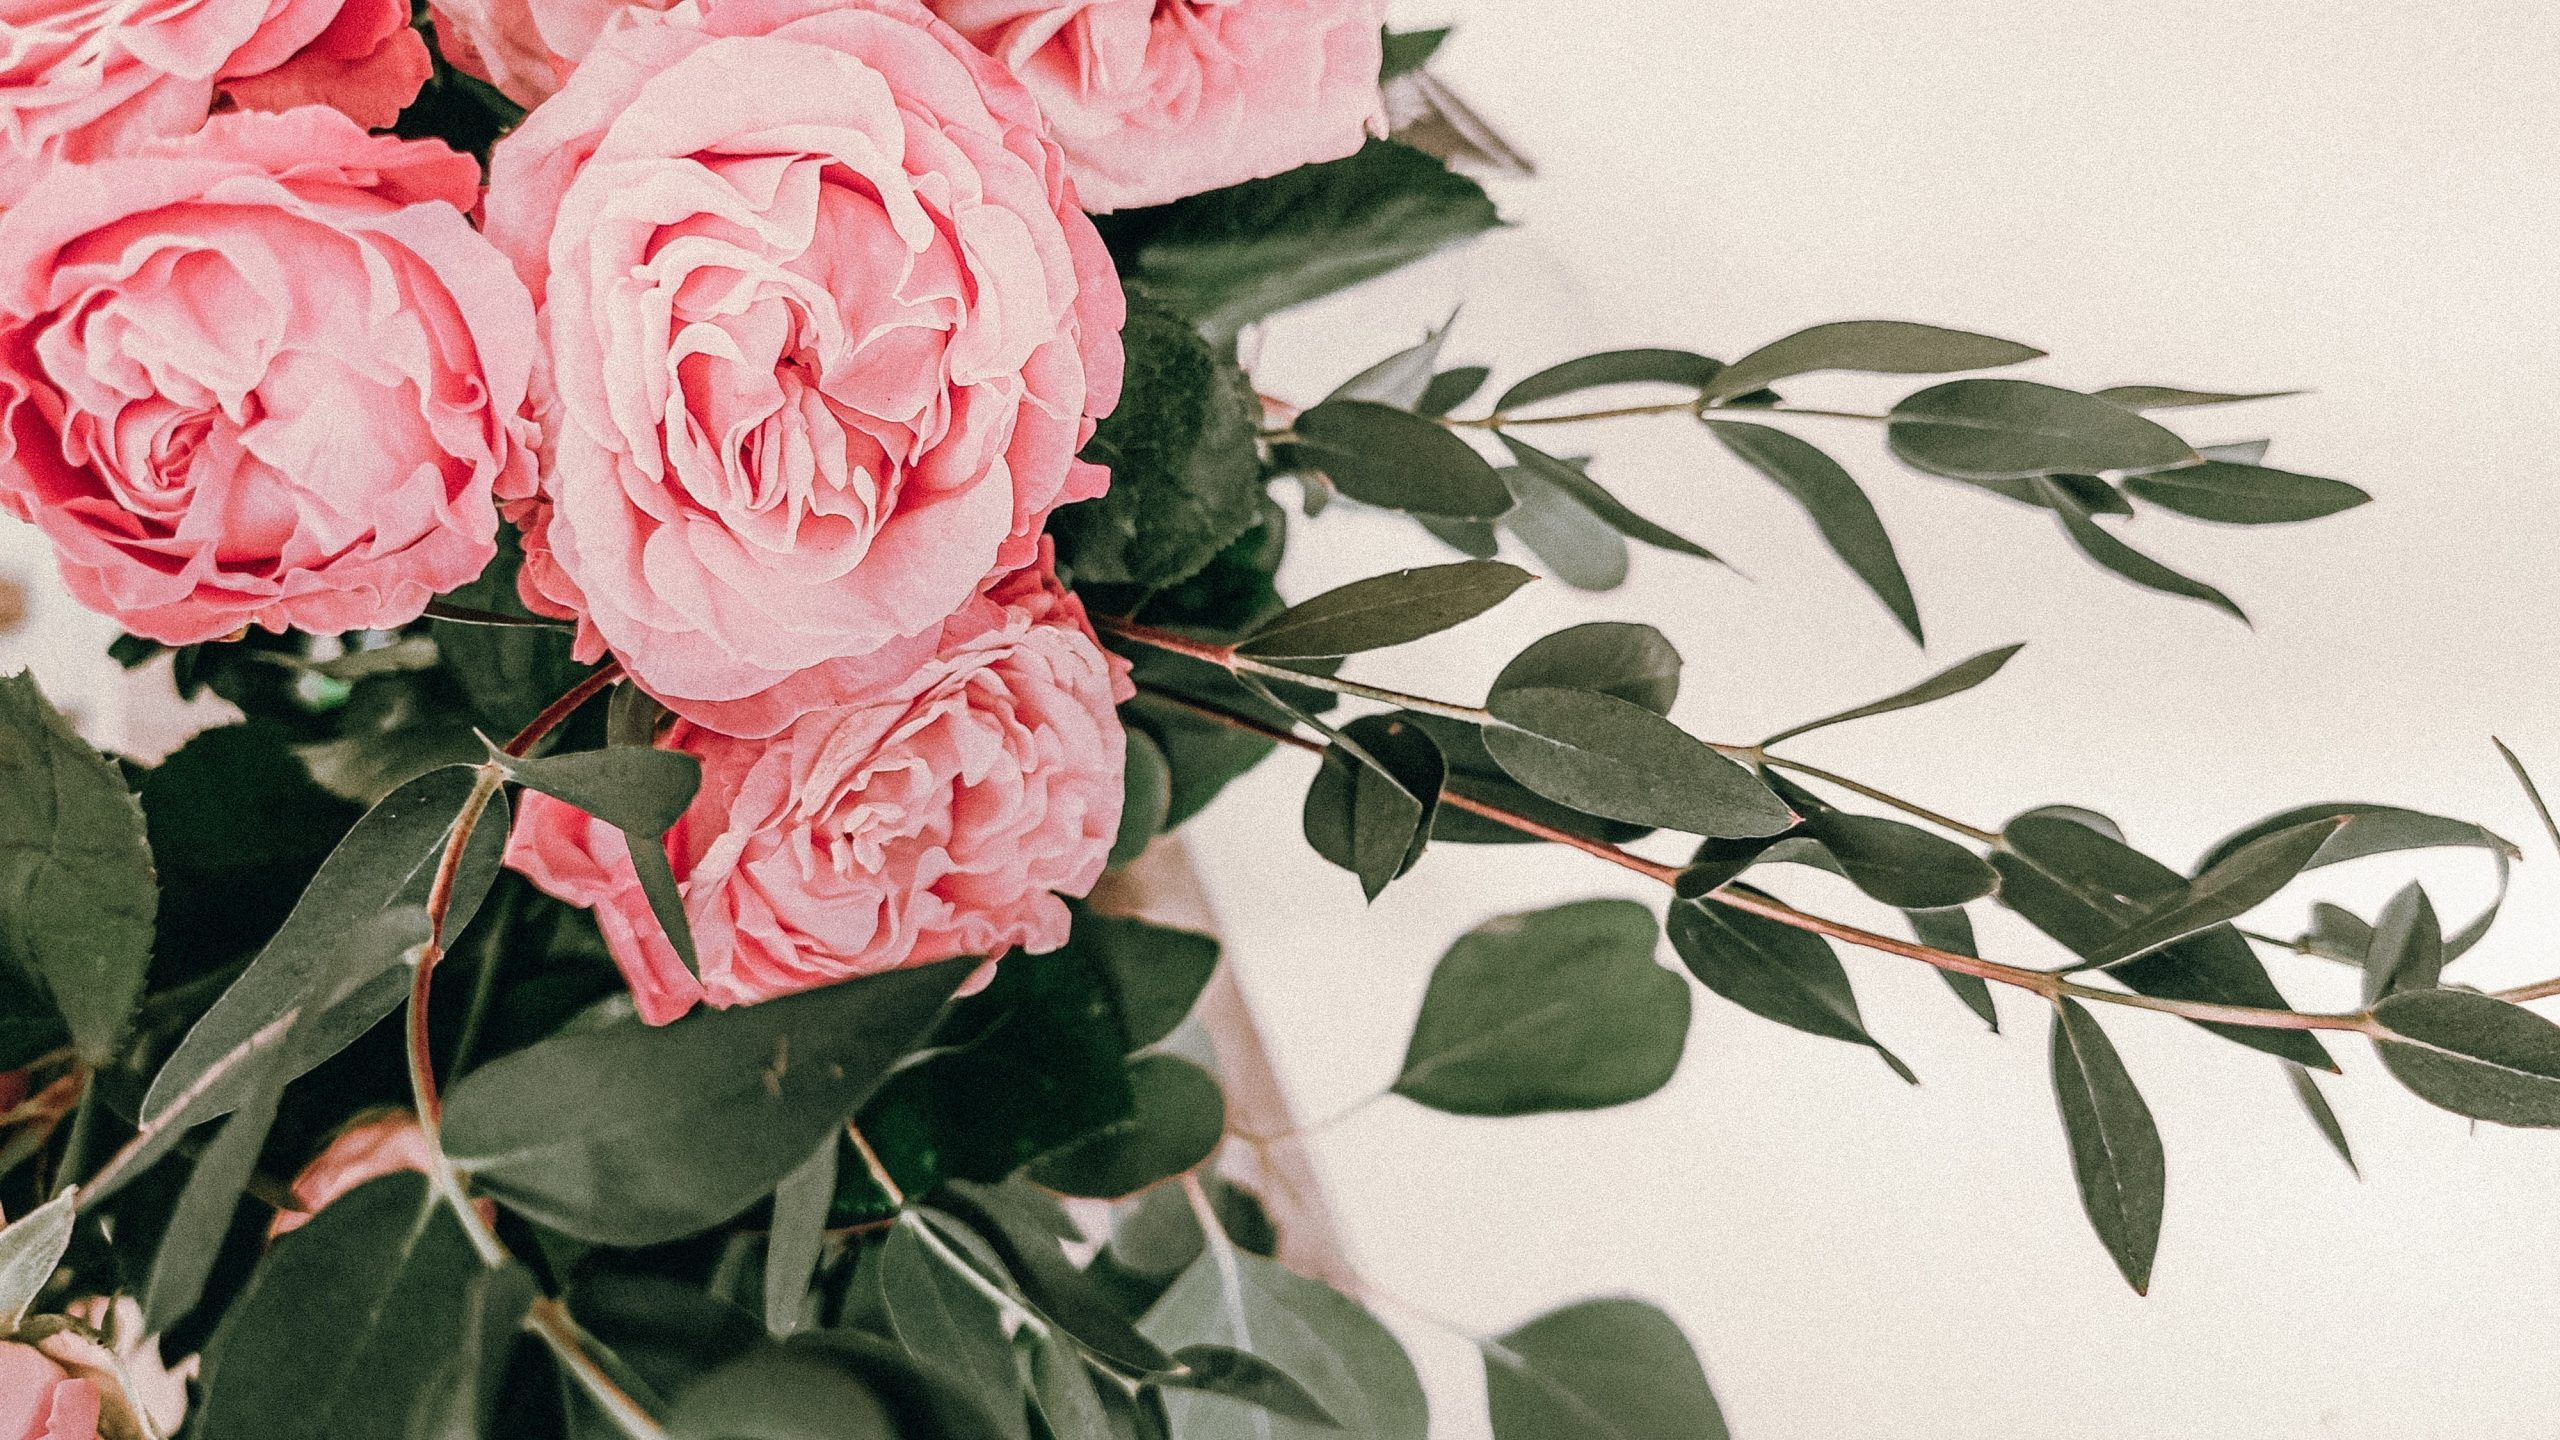 pink-roses-in-close-up-photography-3817038